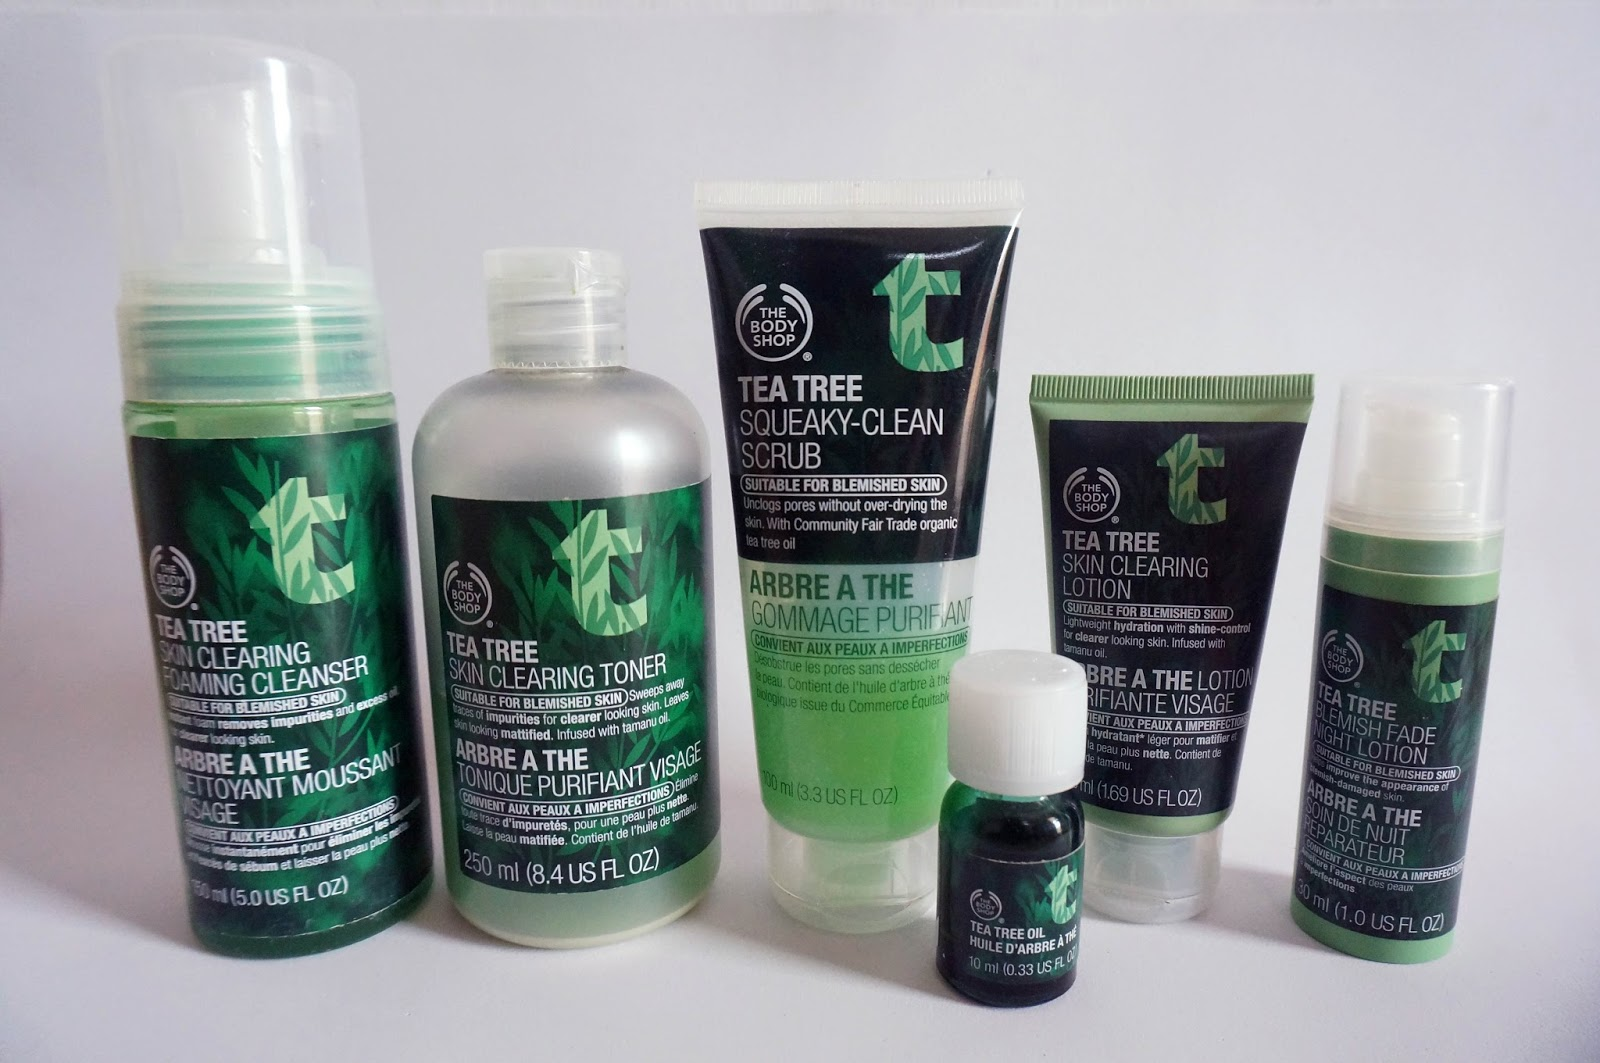 Perawatan The Body Shop